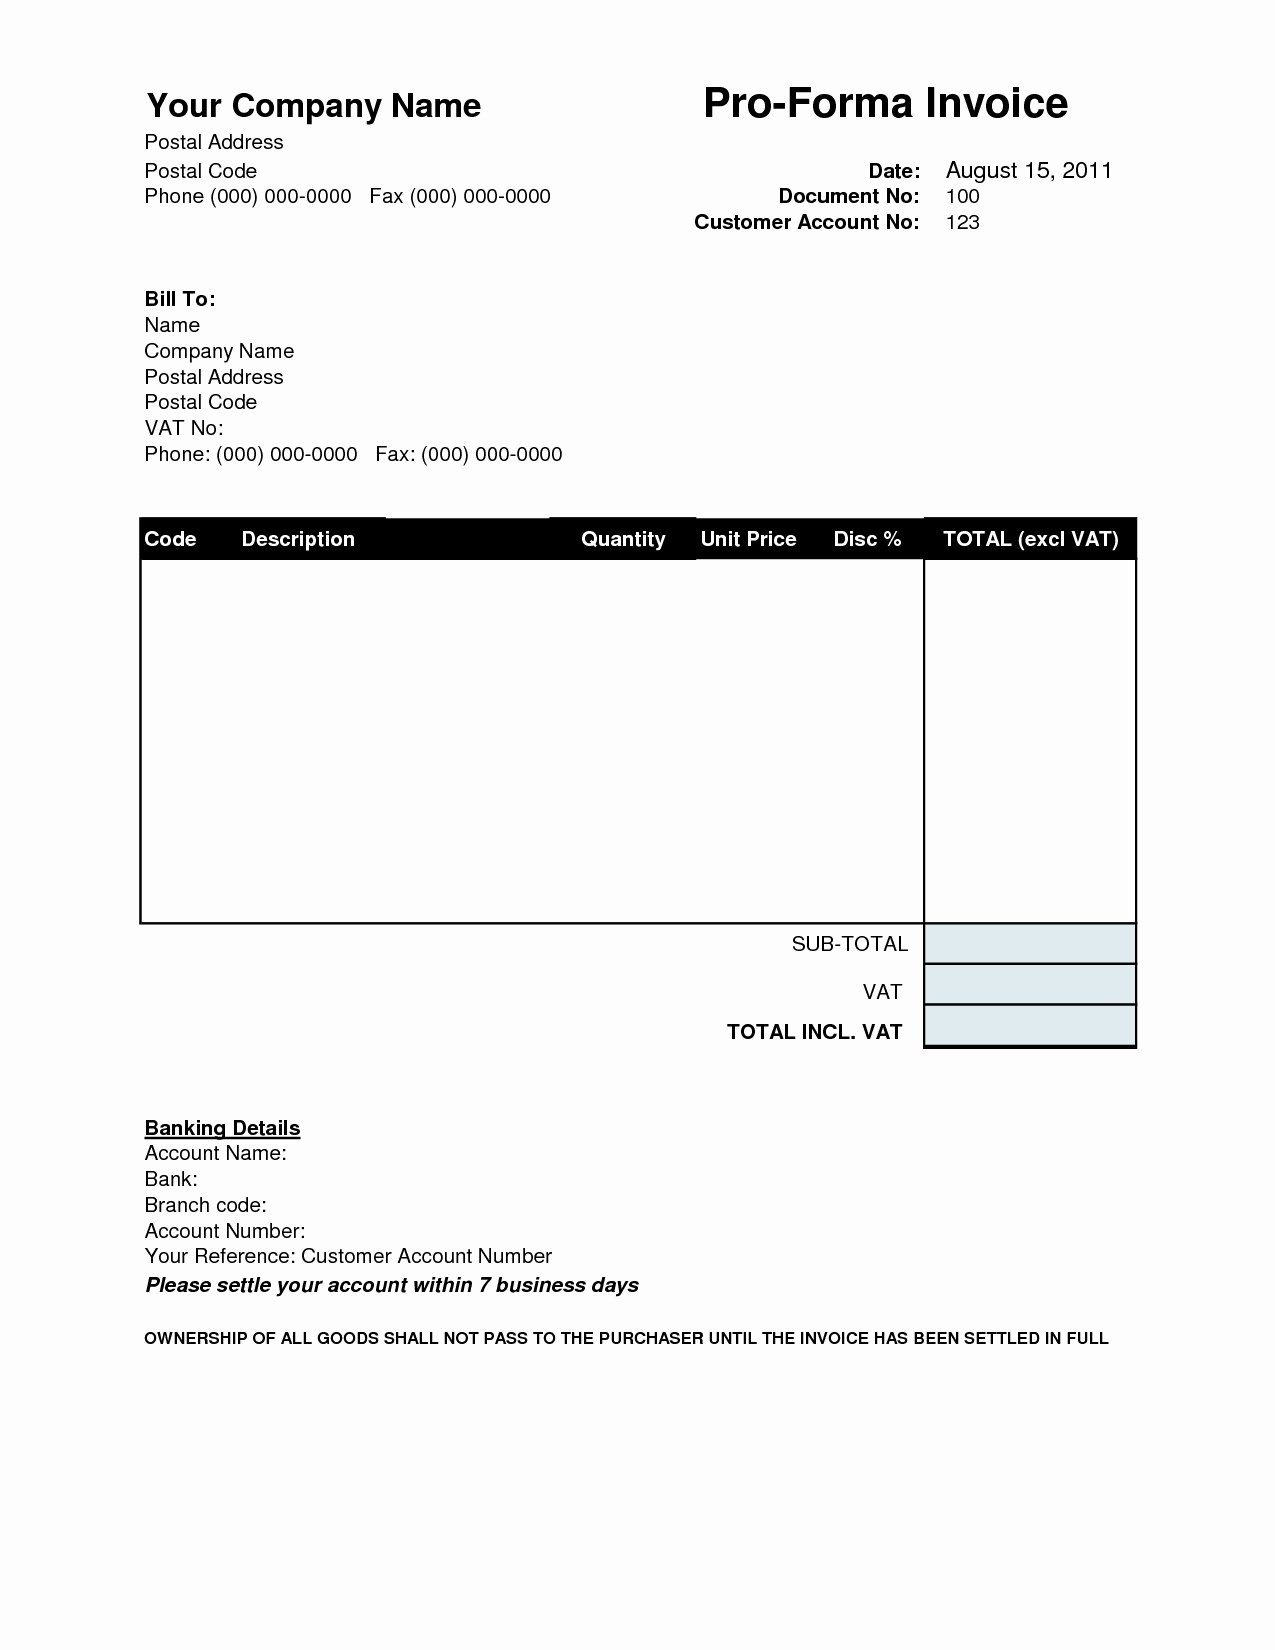 Free Proforma Invoice Template Unique Proforma Invoice Template Download Free Invoice Template